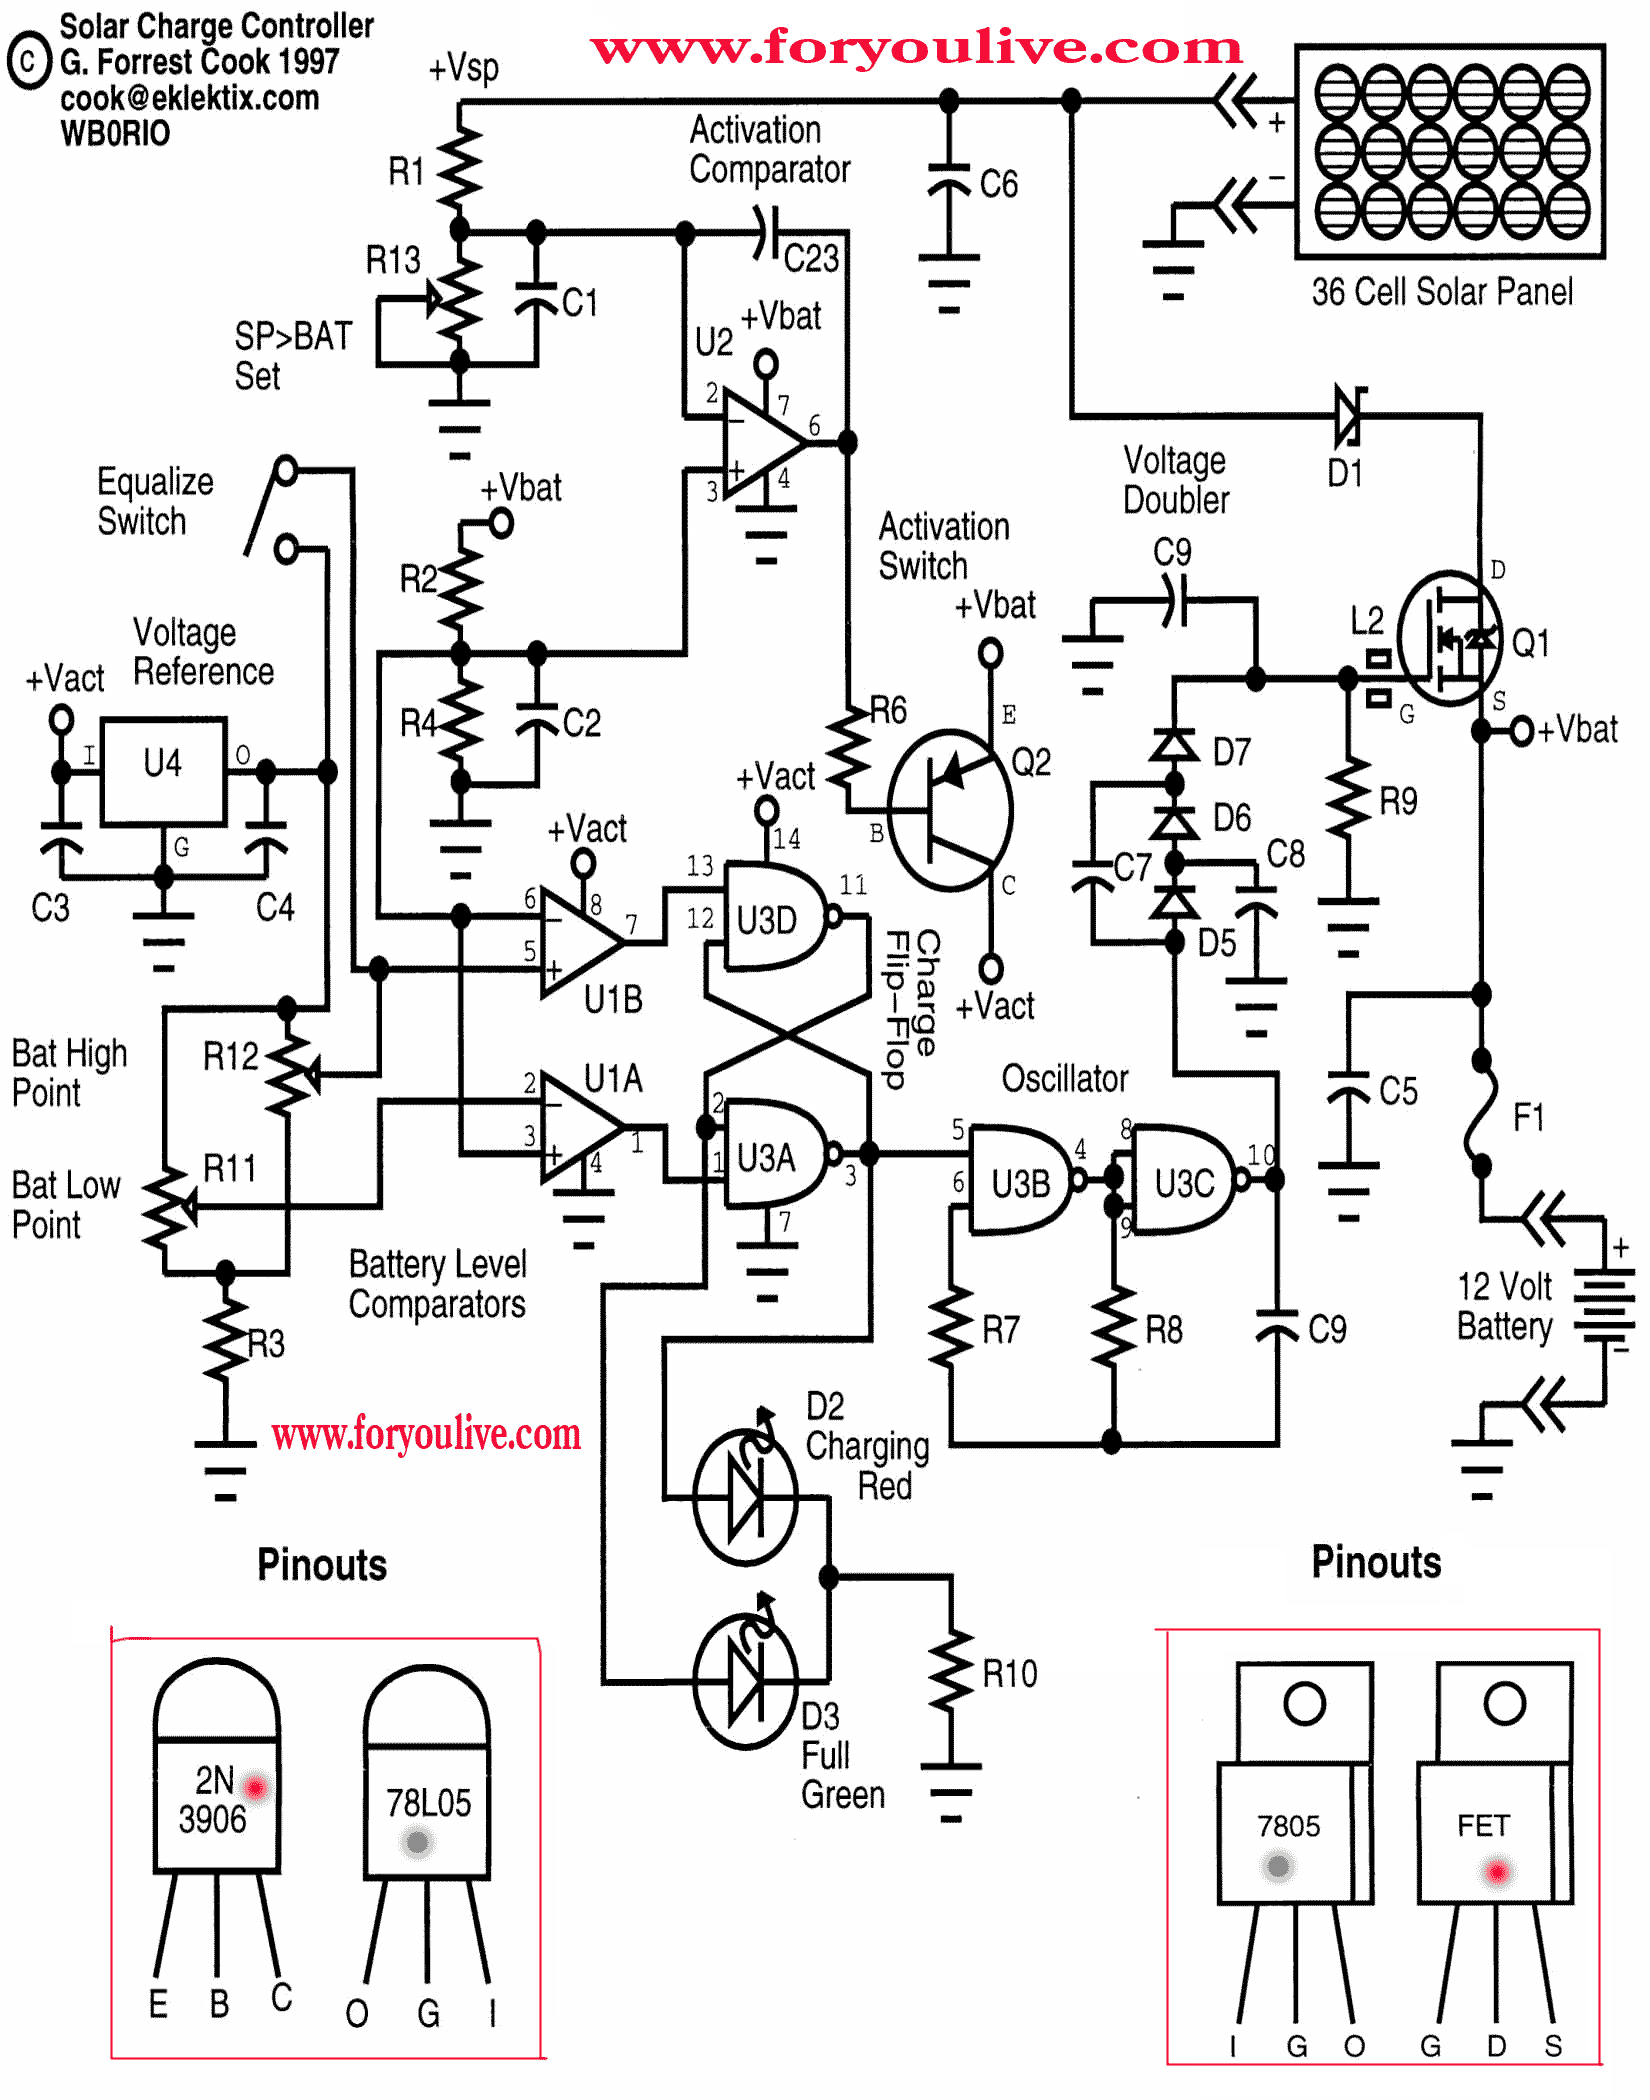 solar panel circuit 5volt regulate voltage 2n3906 is transistor for current caring irfz34 power [ 1650 x 2100 Pixel ]